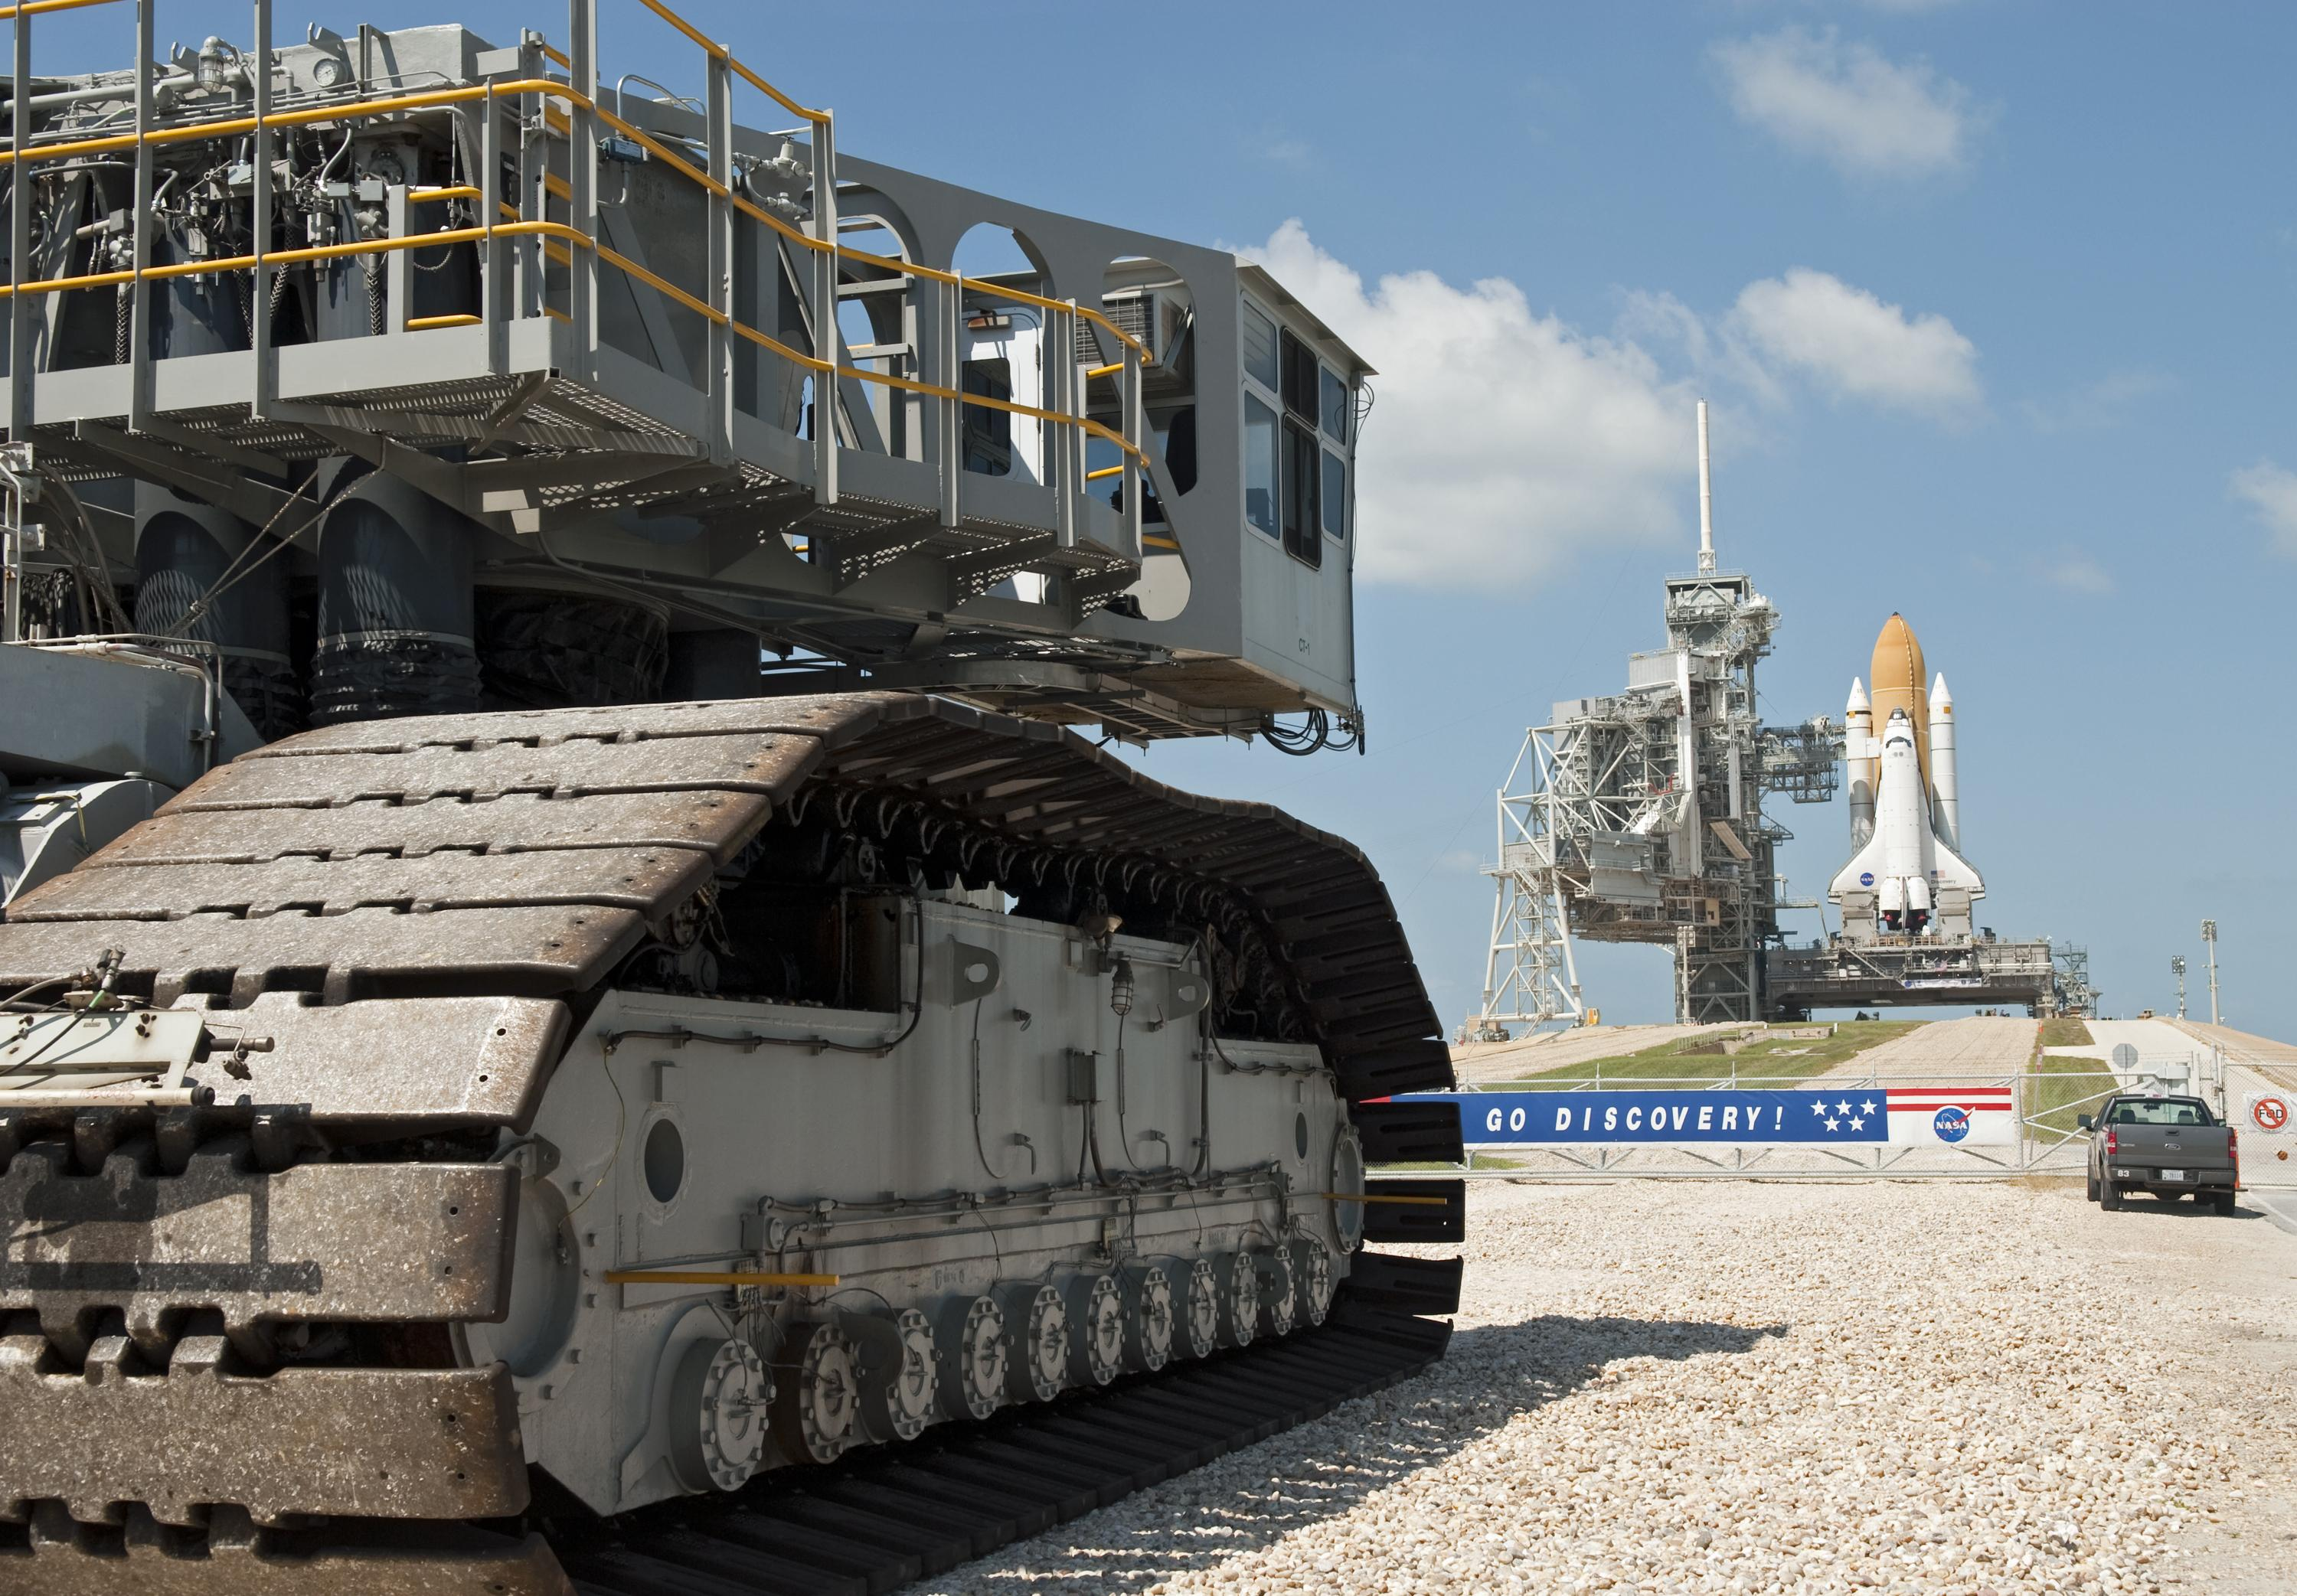 Closeup of NASA's crawler-transporter for carrying rockets to the launch pad